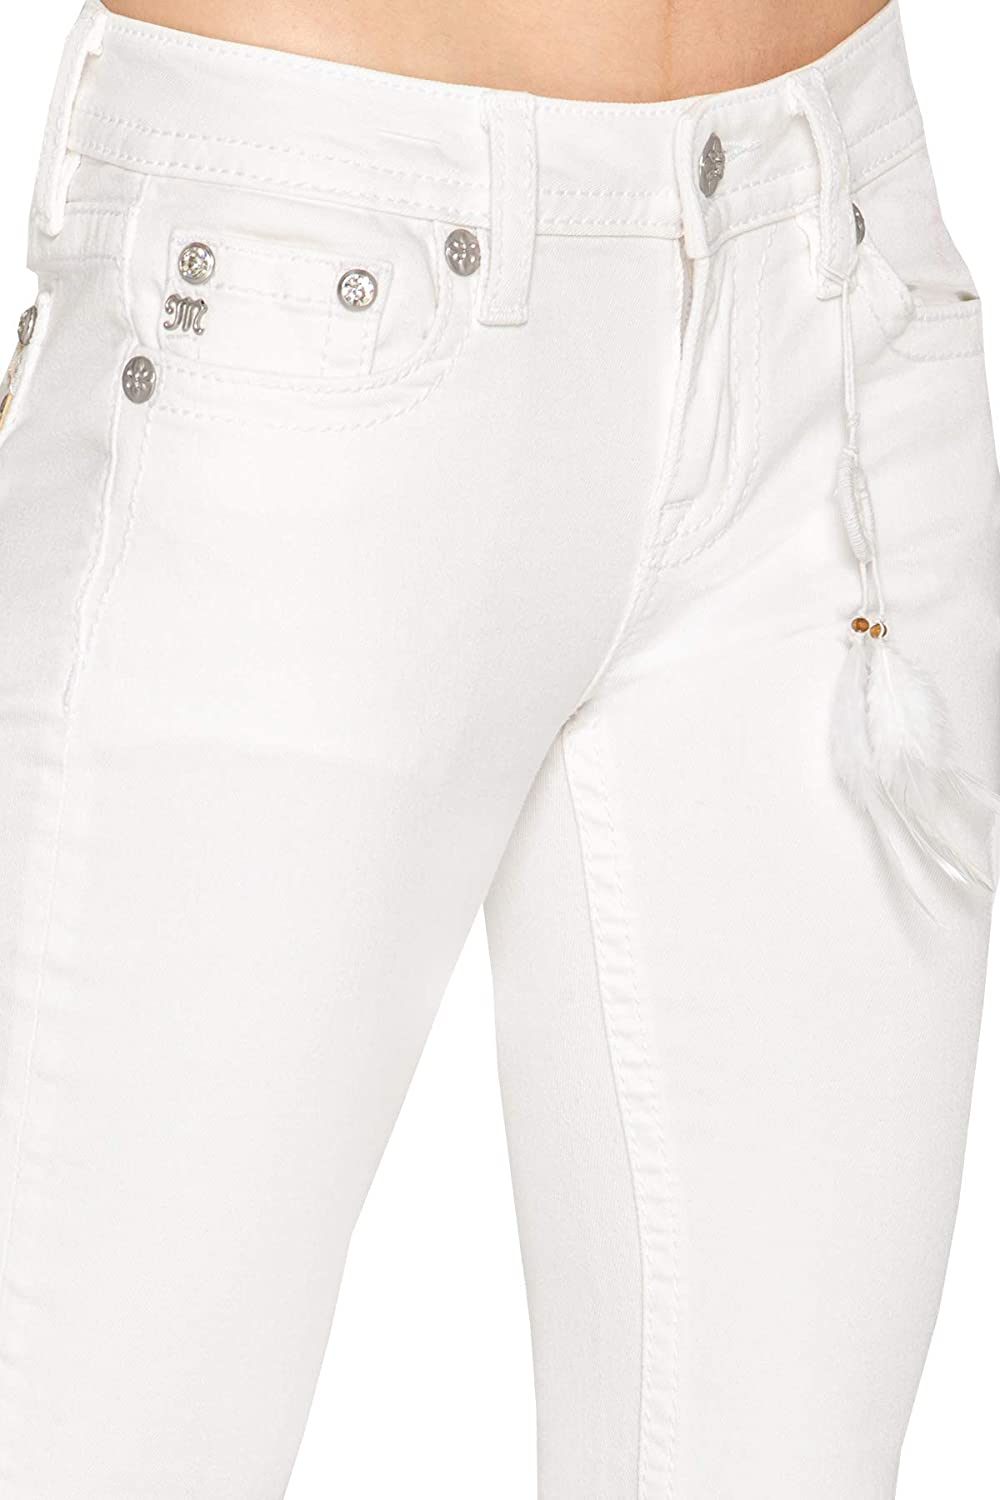 Miss Me Horseshoe Bootcut Jeans in White